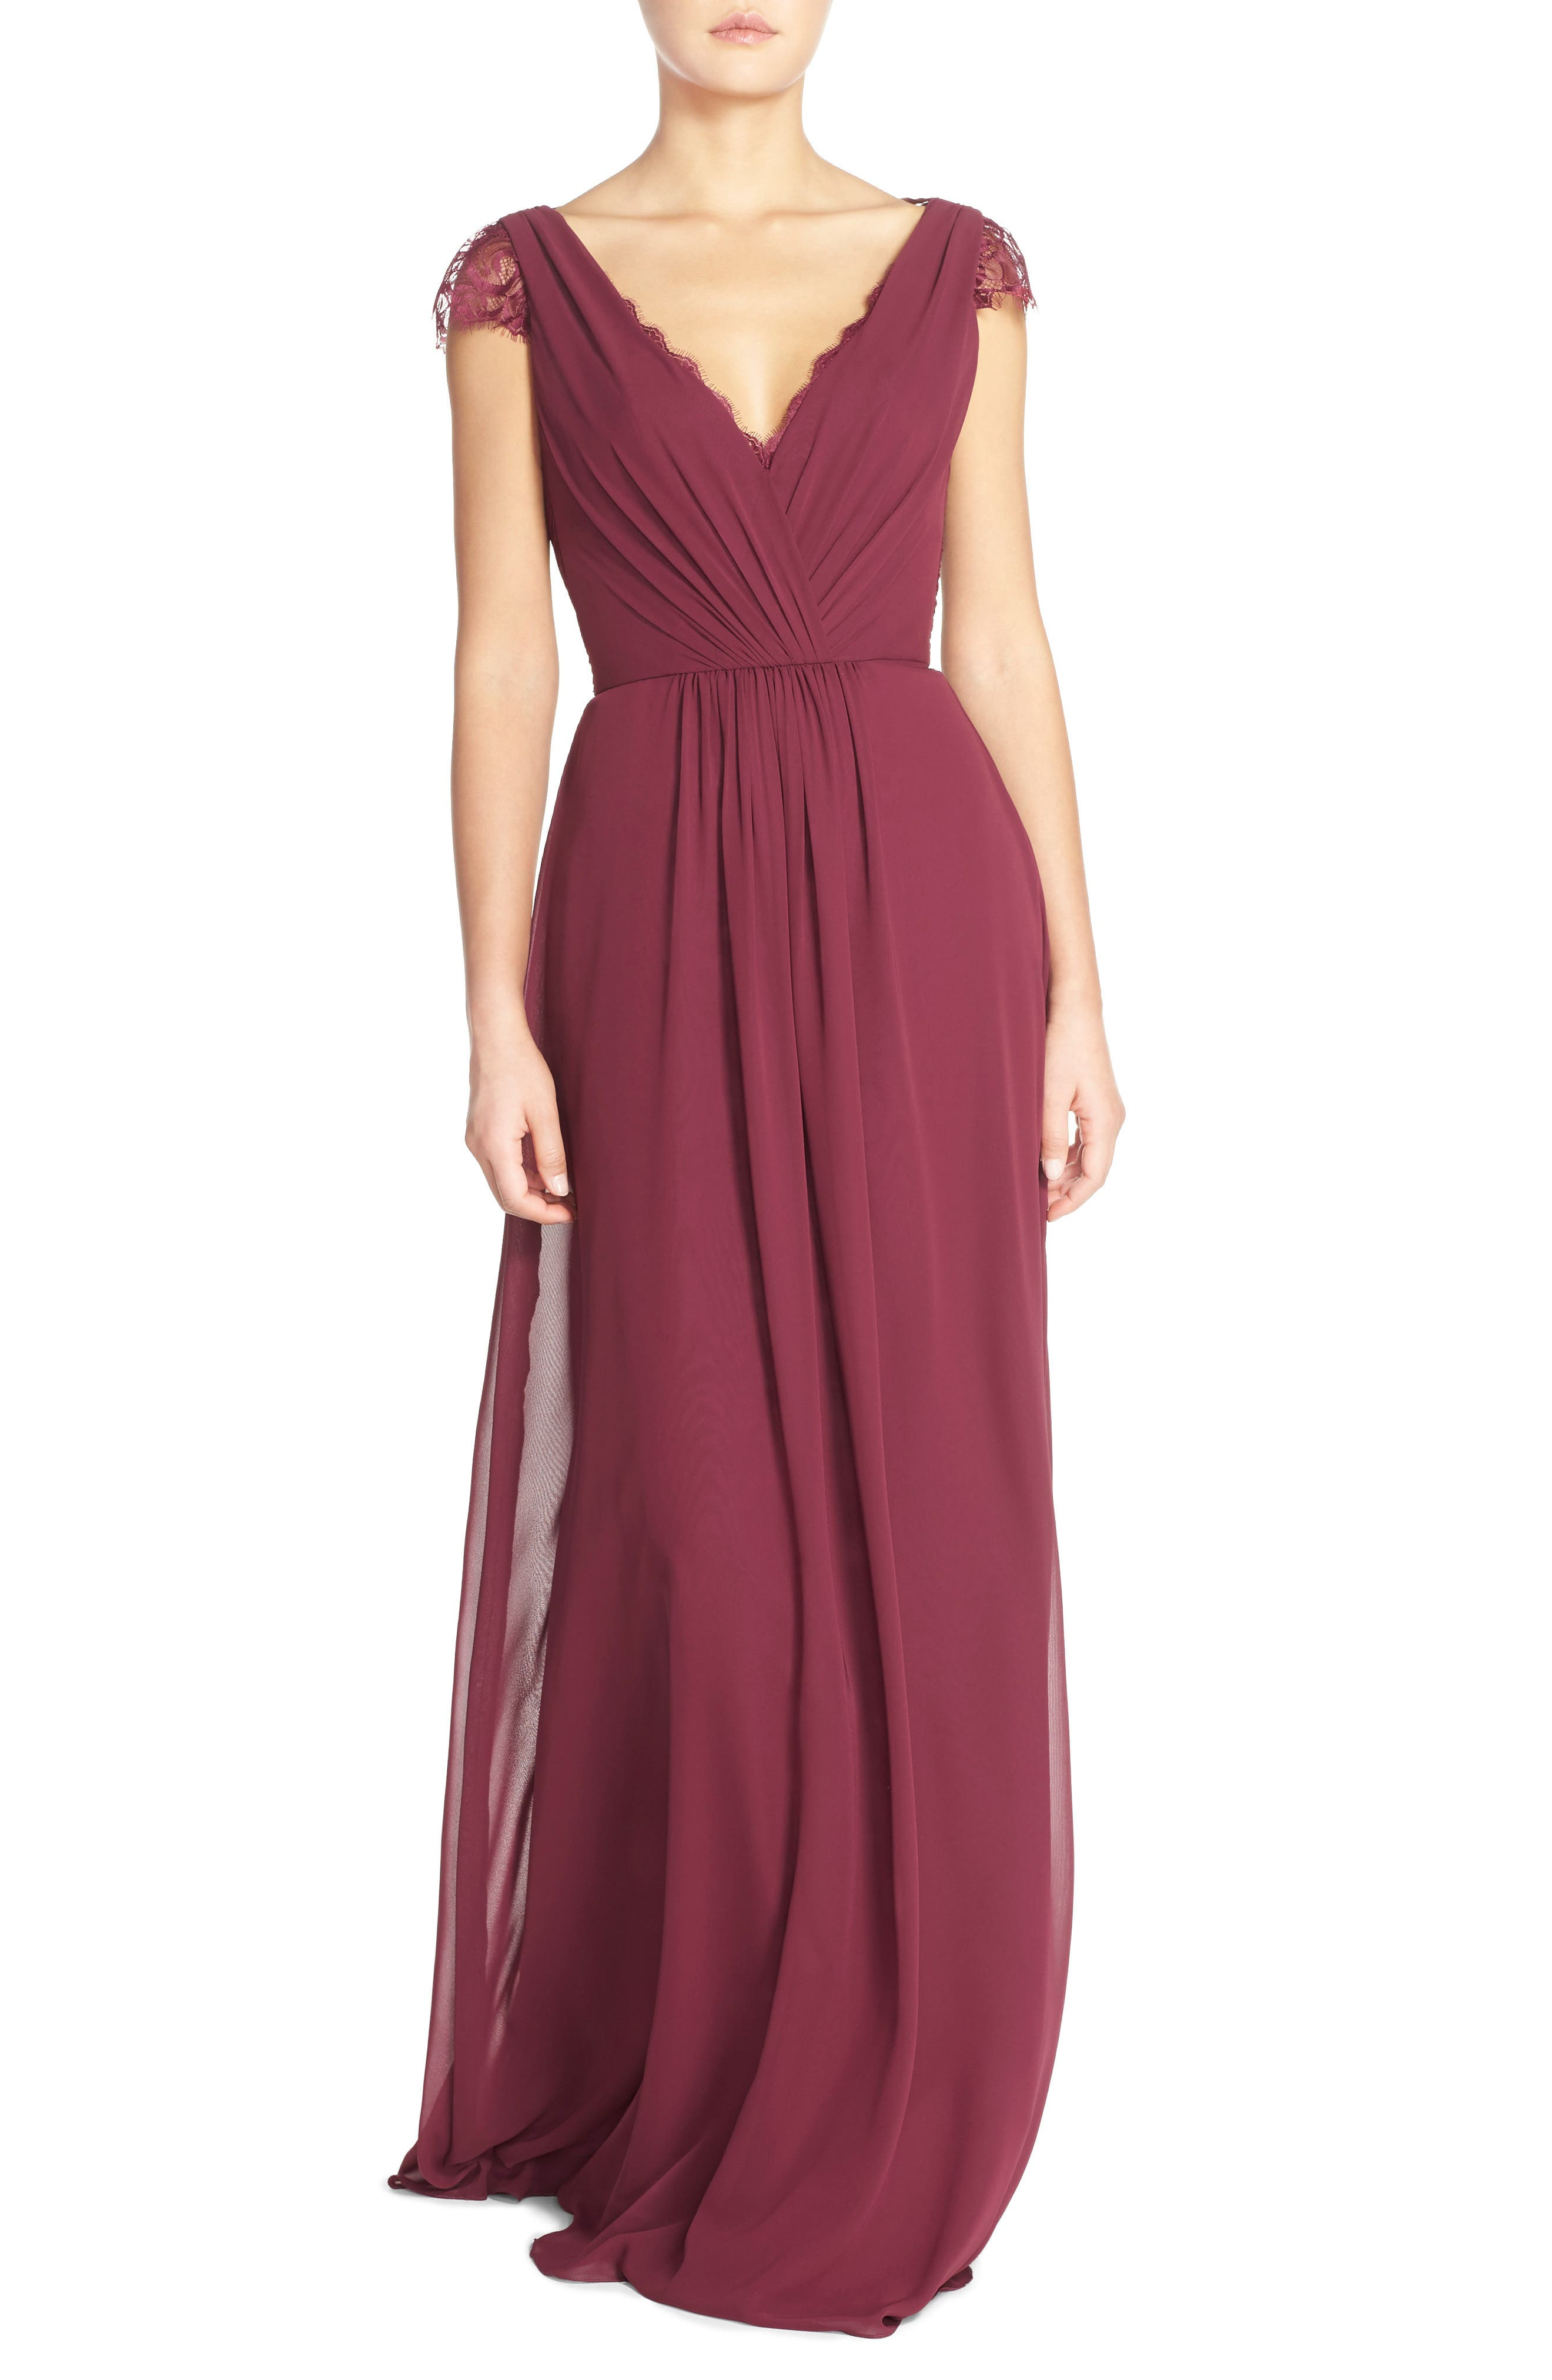 Hayley Paige Occasions Lace & Chiffon Cap Sleeve Gown